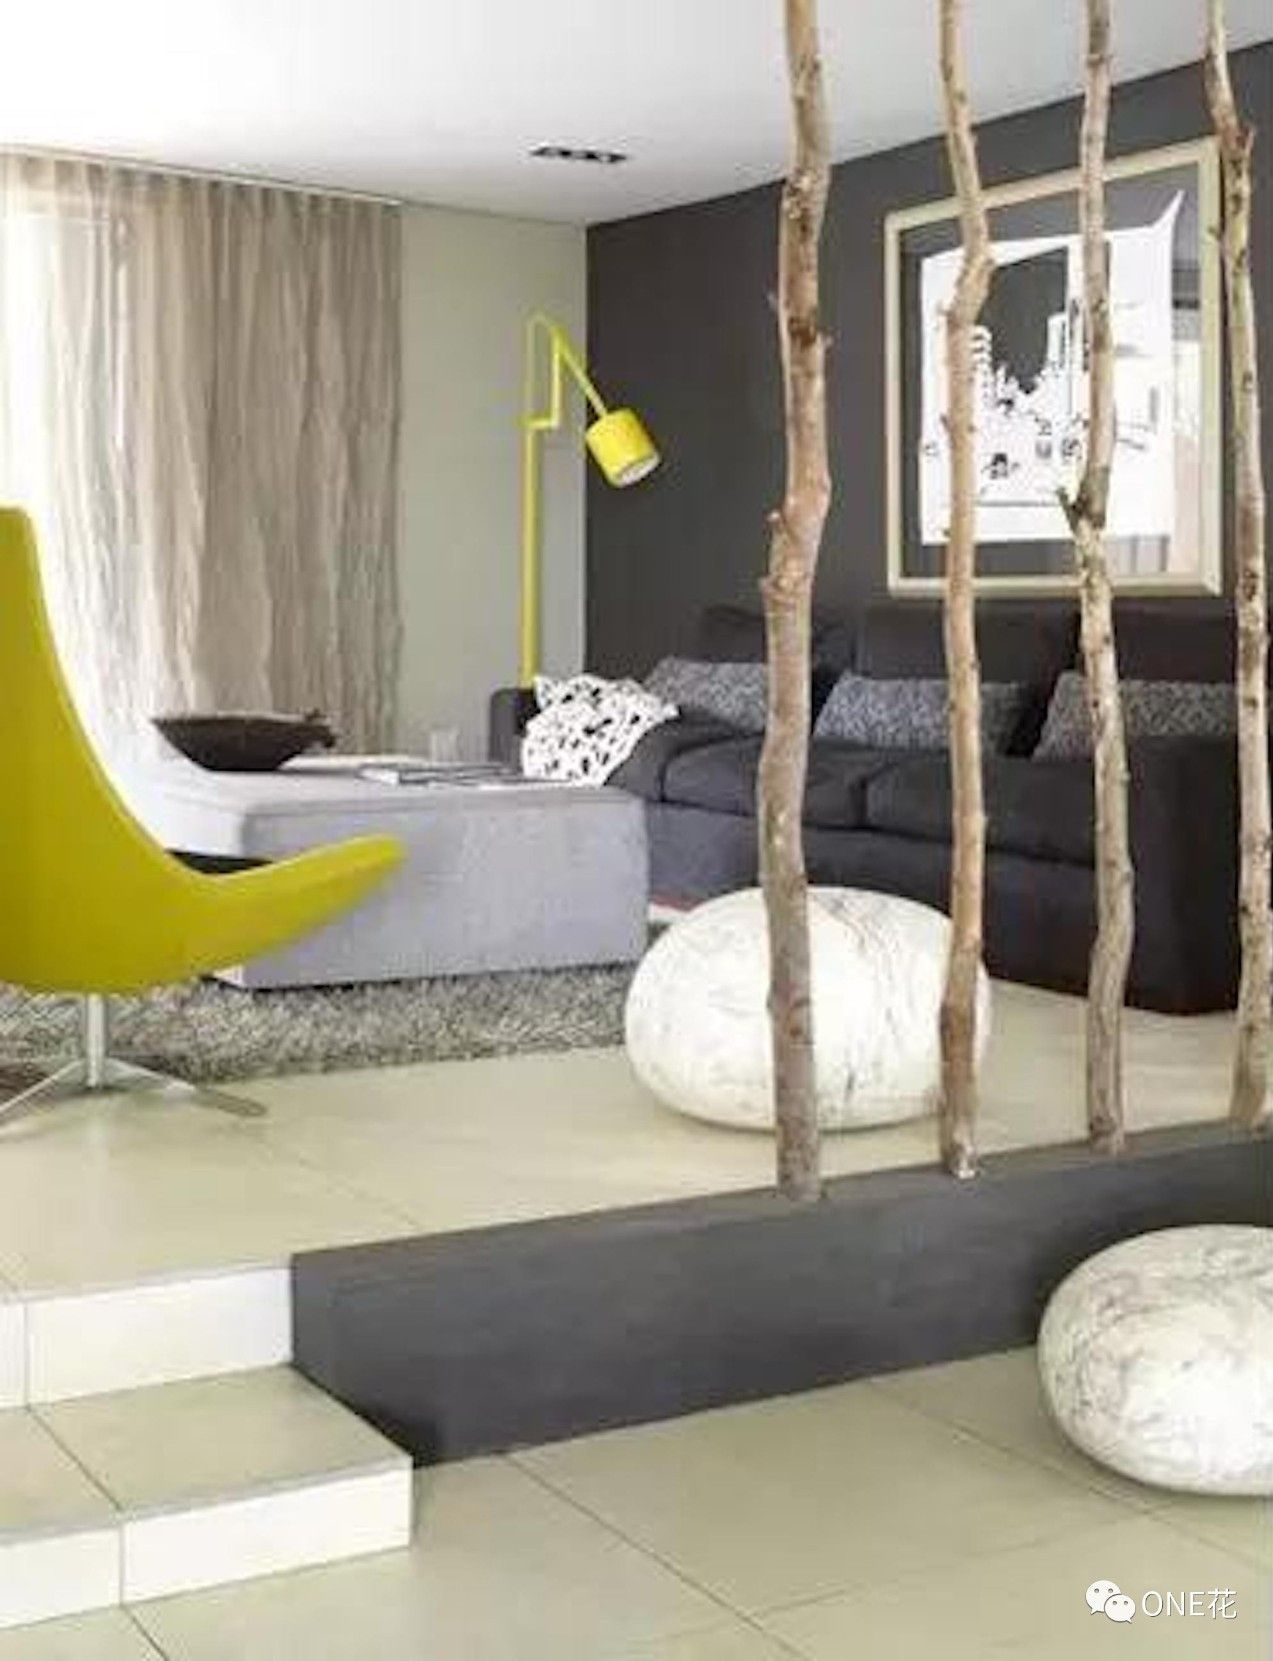 Image result for creative room divider ideas roomdividerideas